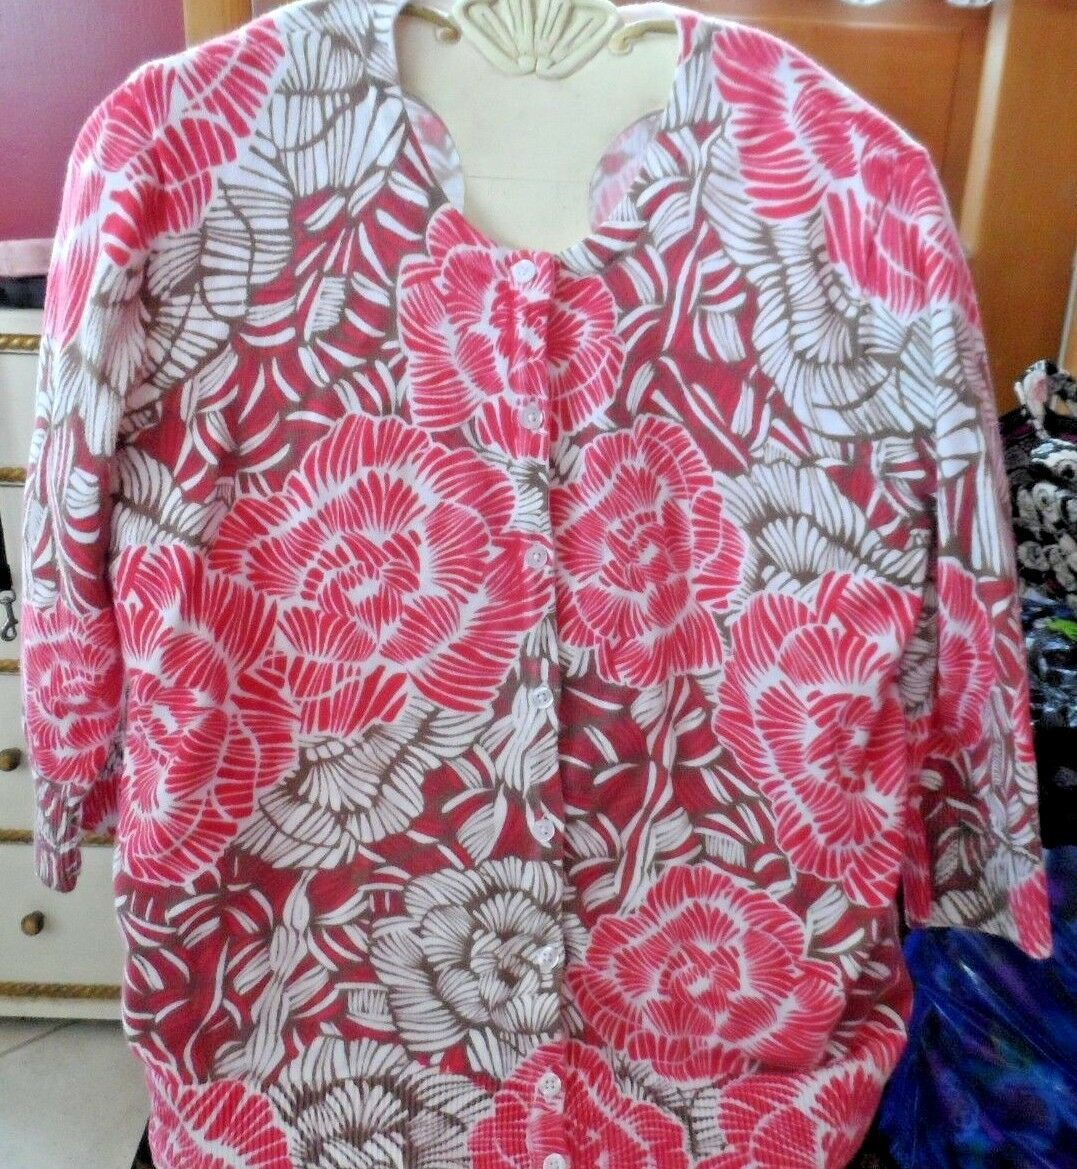 Ladies Petite Medium tan and red floral cardigan sweater by Croft & Barrow - $12.50